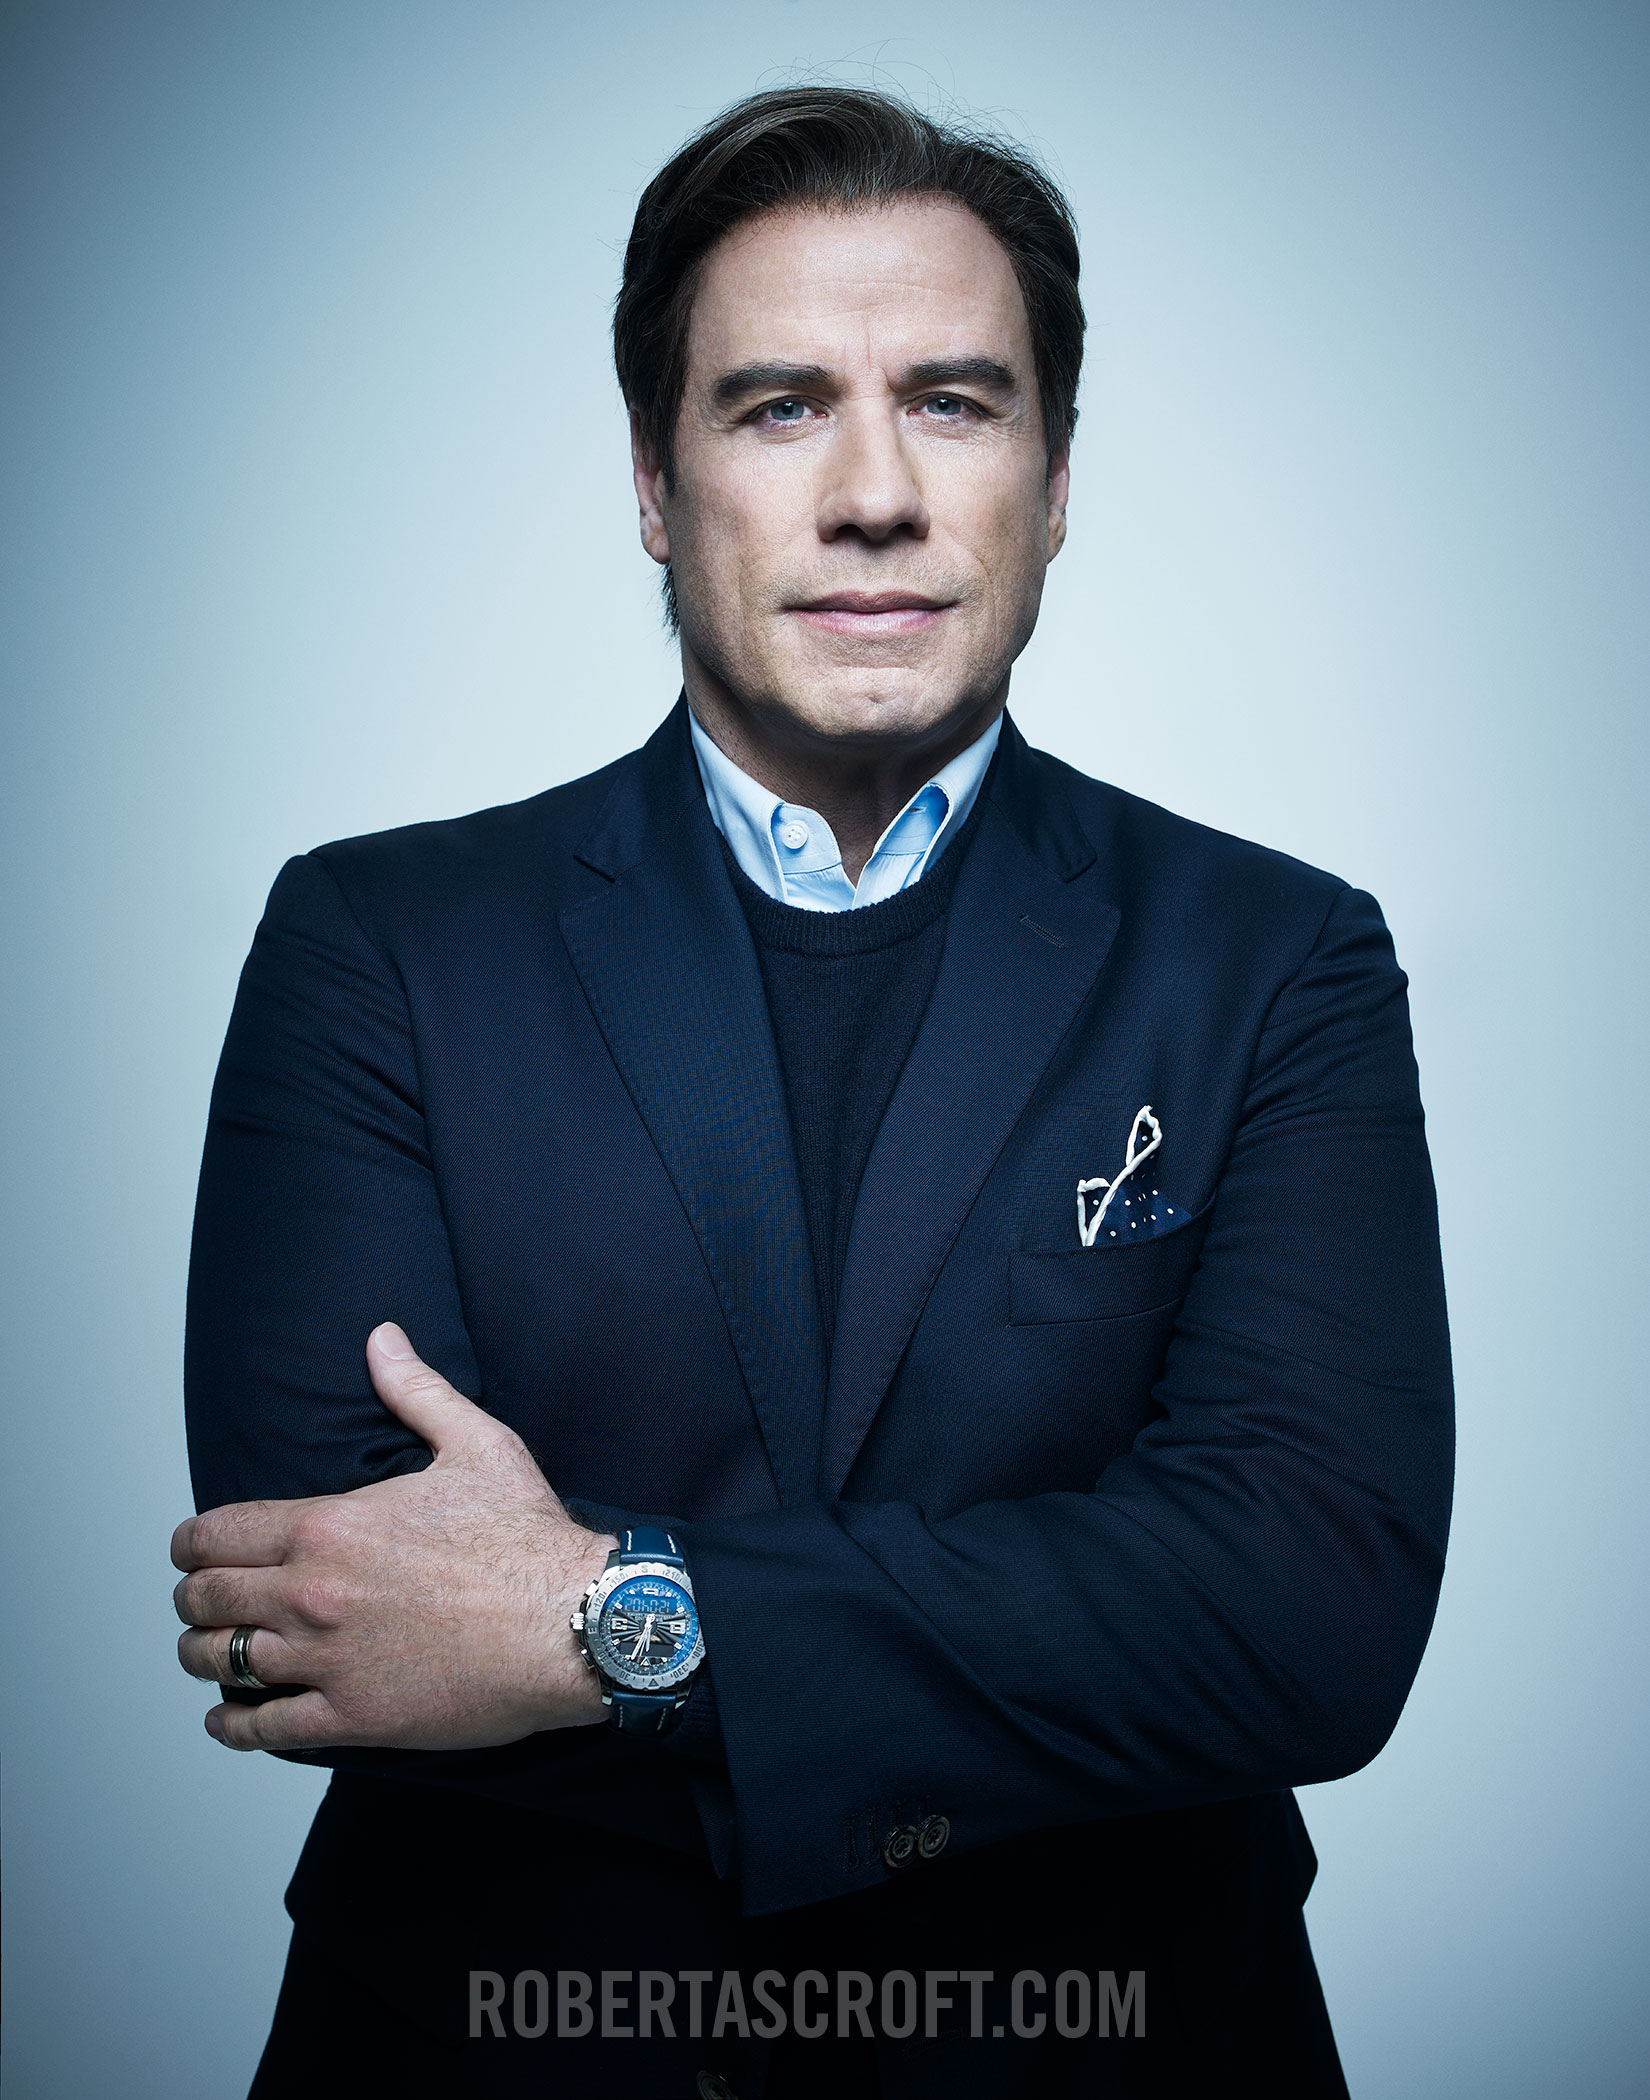 John-Travolta-by-Robert-Ascroft-01